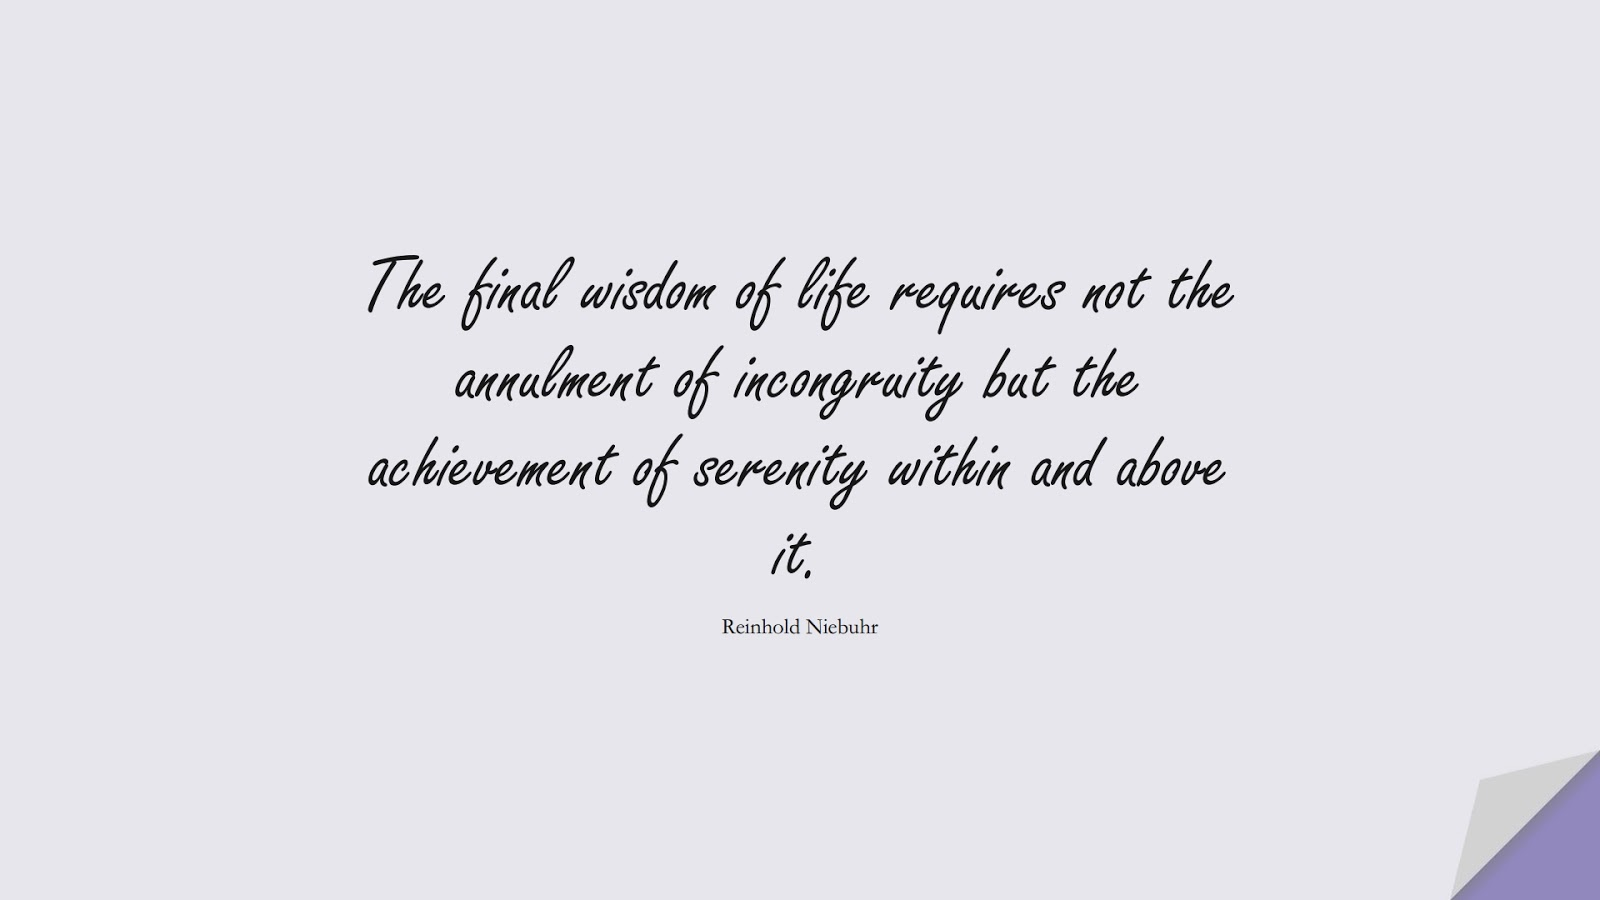 The final wisdom of life requires not the annulment of incongruity but the achievement of serenity within and above it. (Reinhold Niebuhr);  #WordsofWisdom